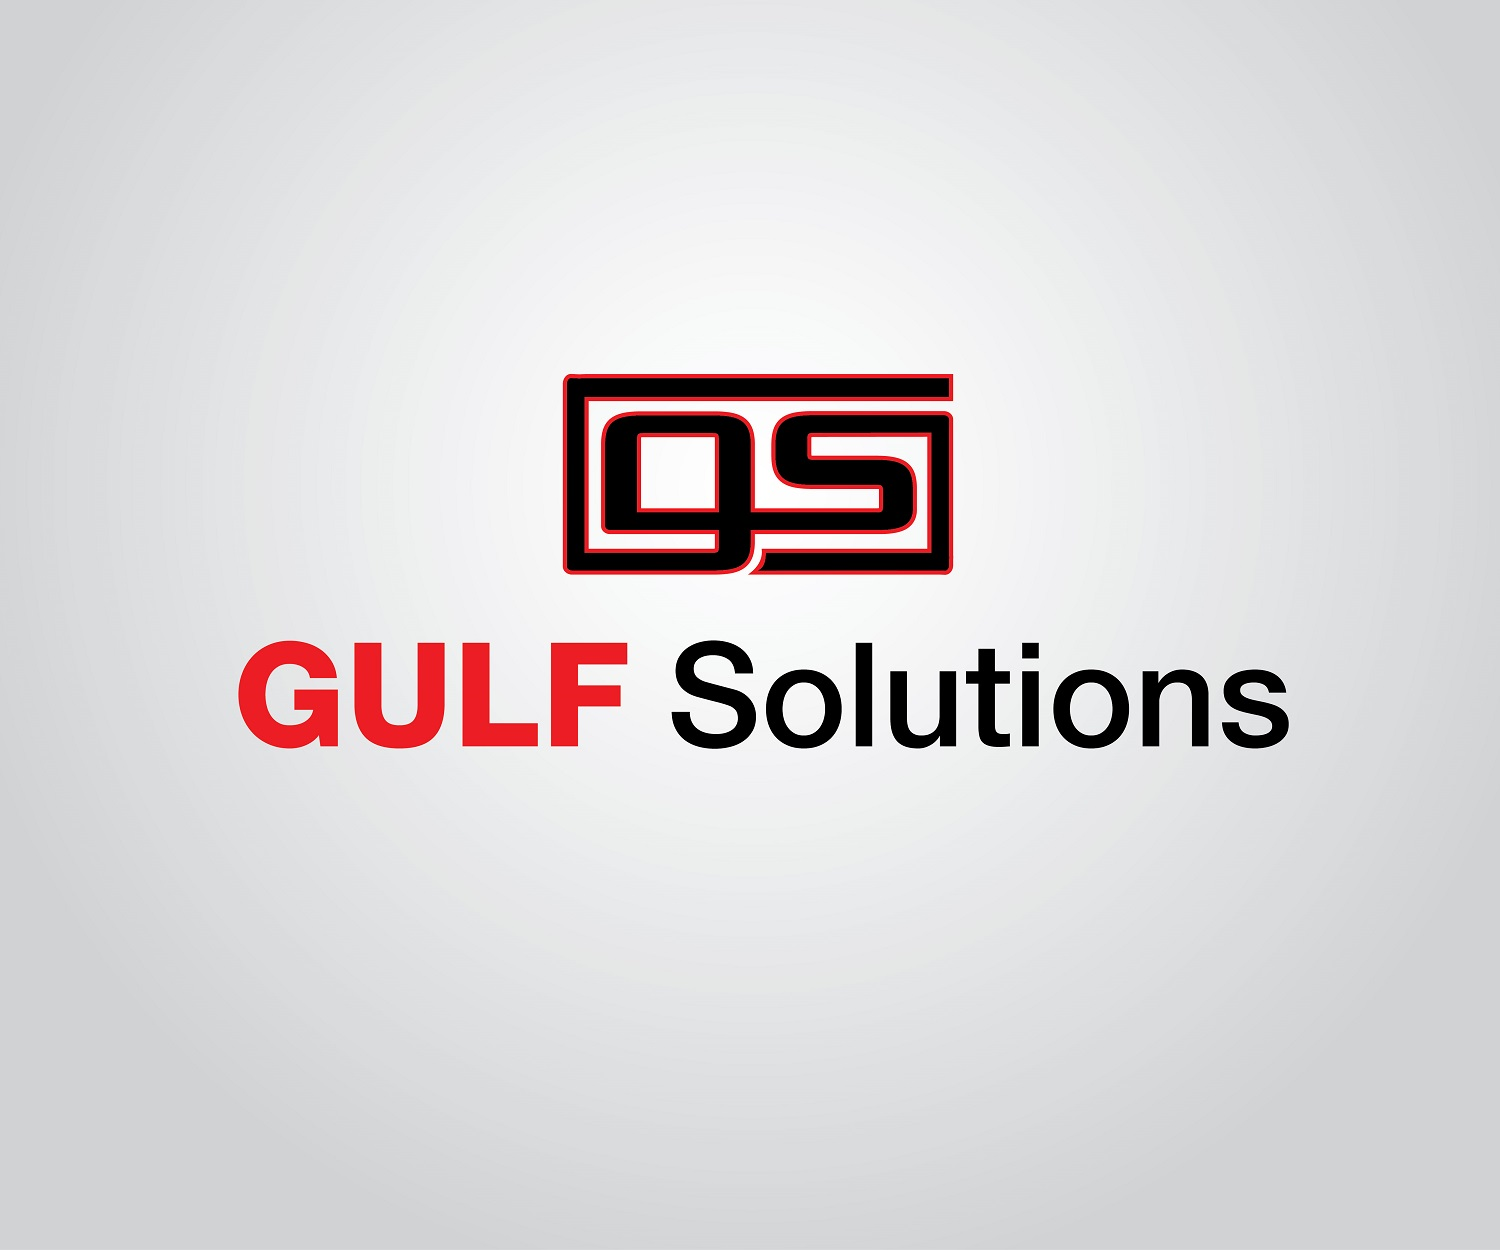 Logo Design by jhunzkie24 - Entry No. 87 in the Logo Design Contest New Logo Design for Gulf solutions company.